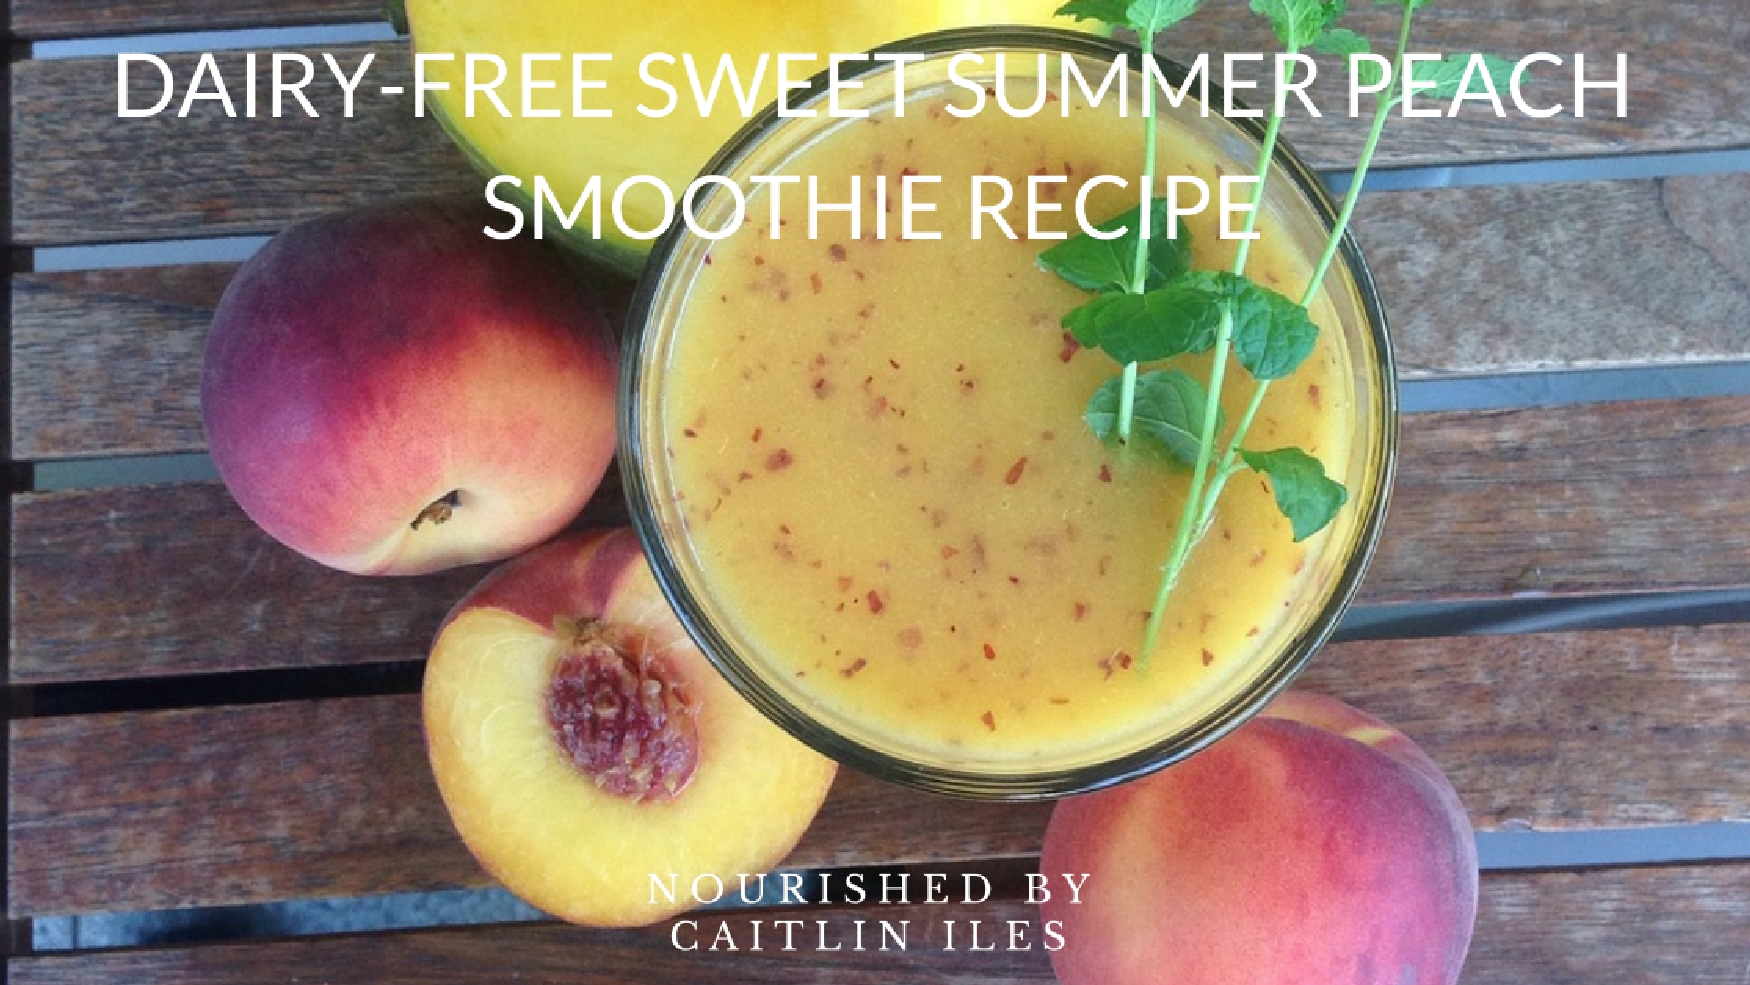 Dairy-Free Sweet Summer Peach Smoothie Recipe